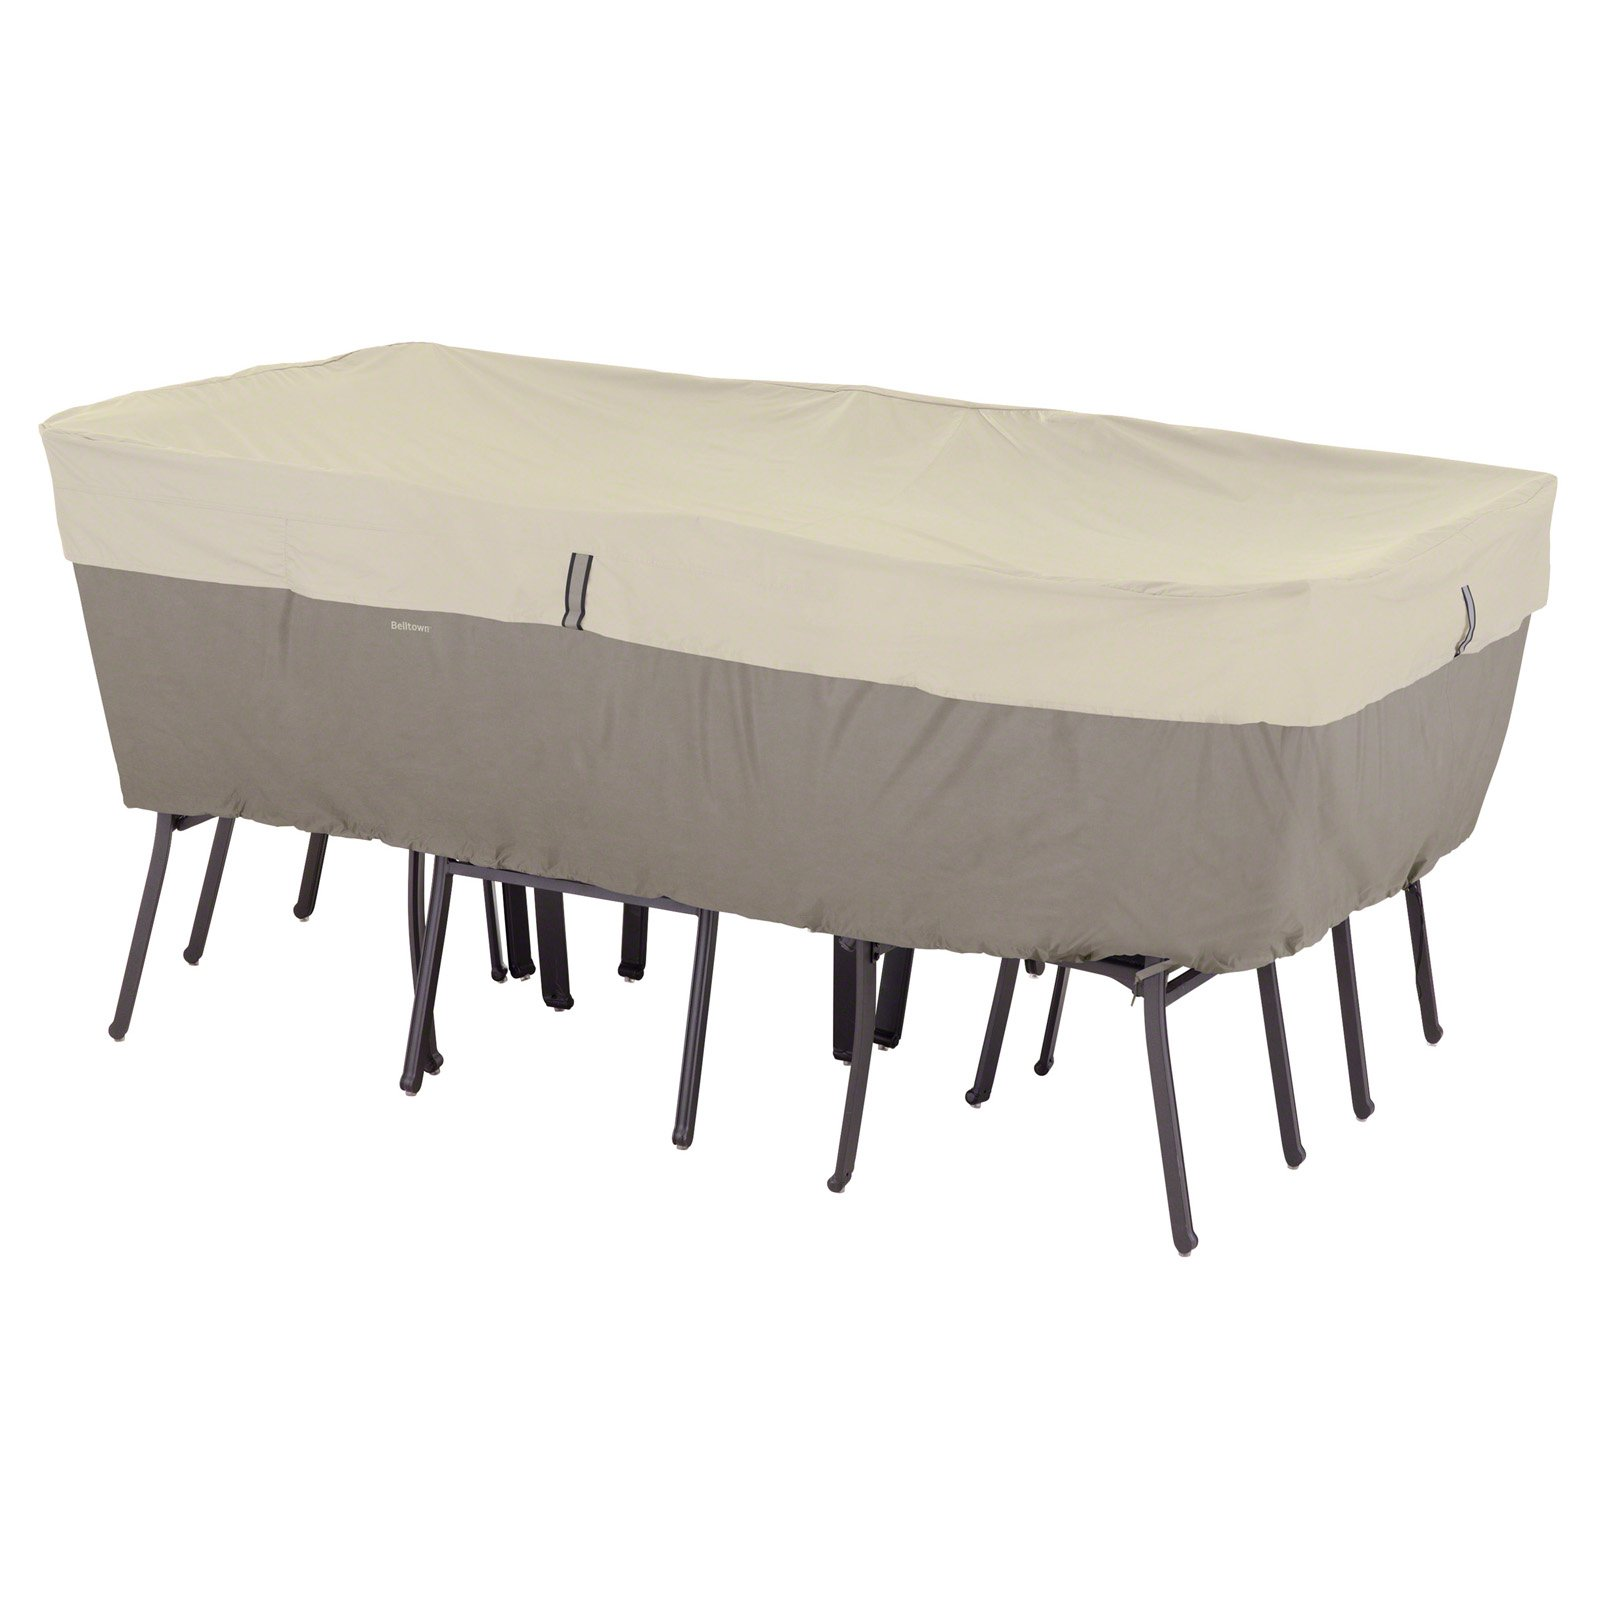 Clic Accessories Belltown Rectangular Oval Table And Chair Patio Furniture Storage Cover Large Sidewalk Grey